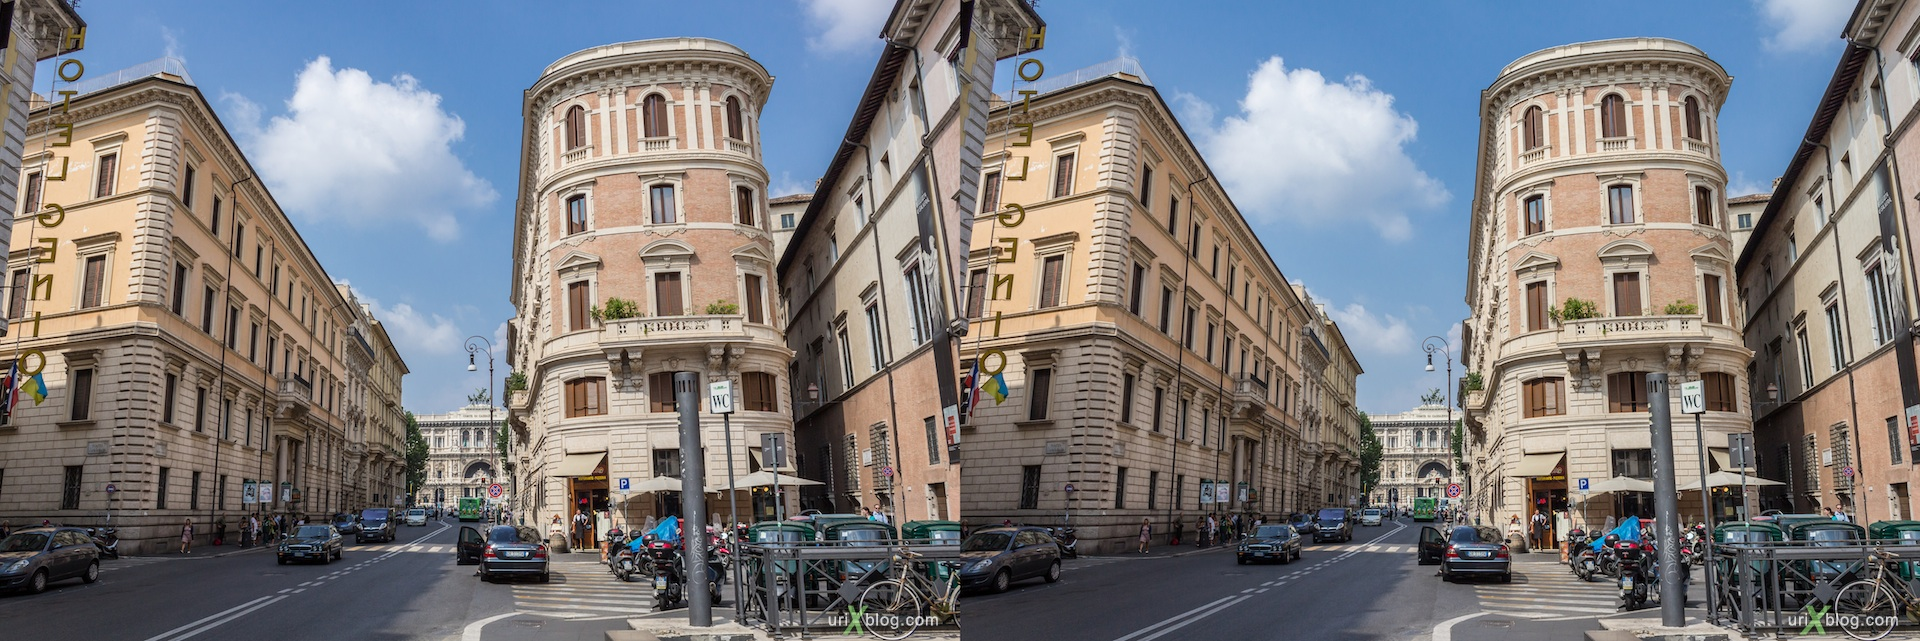 2012, via Giuseppe Zanardelli street, 3D, stereo pair, cross-eyed, crossview, cross view stereo pair